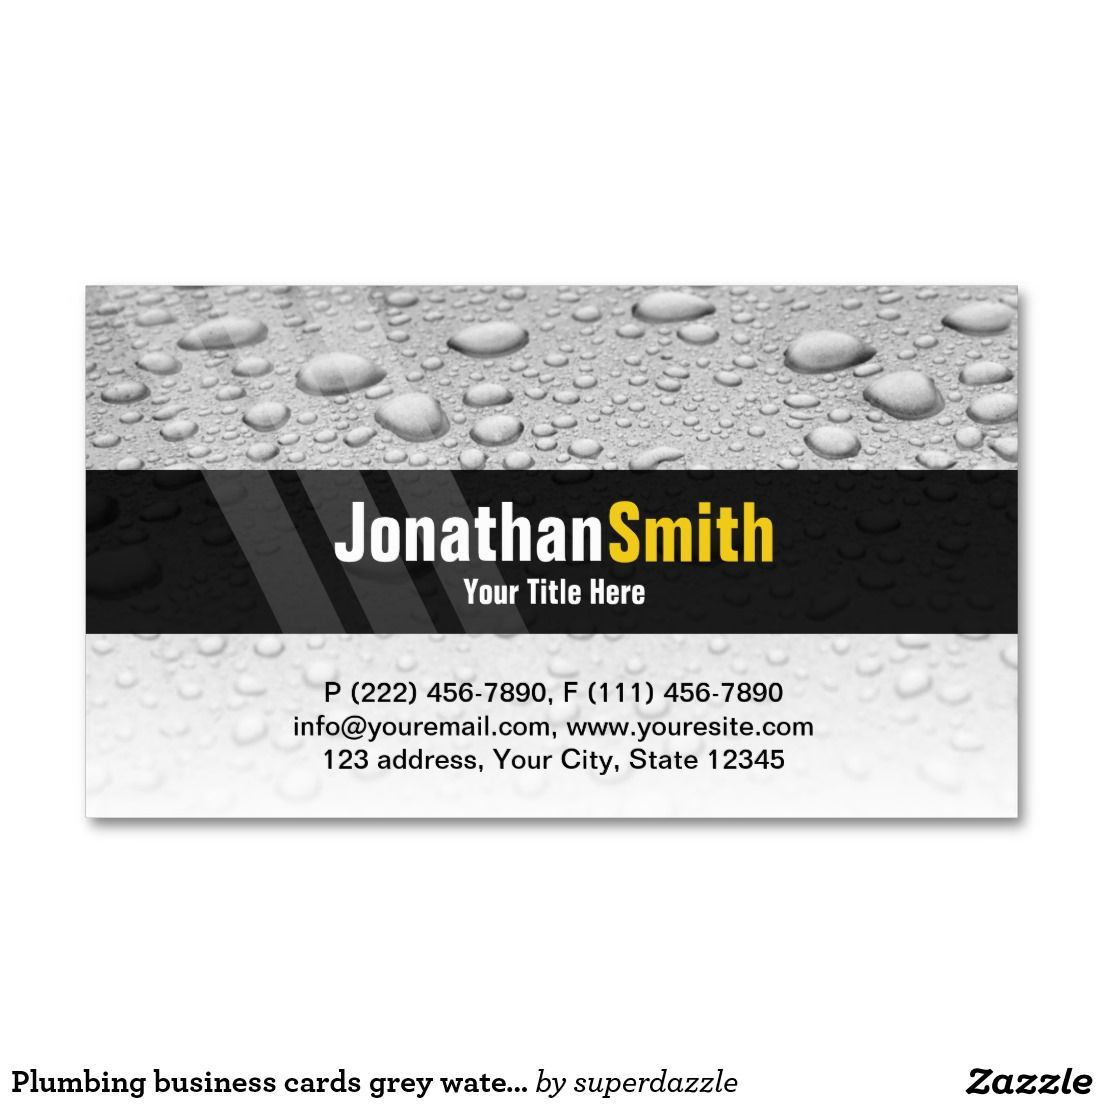 Plumbing business cards grey water drops | Water drops, Business ...